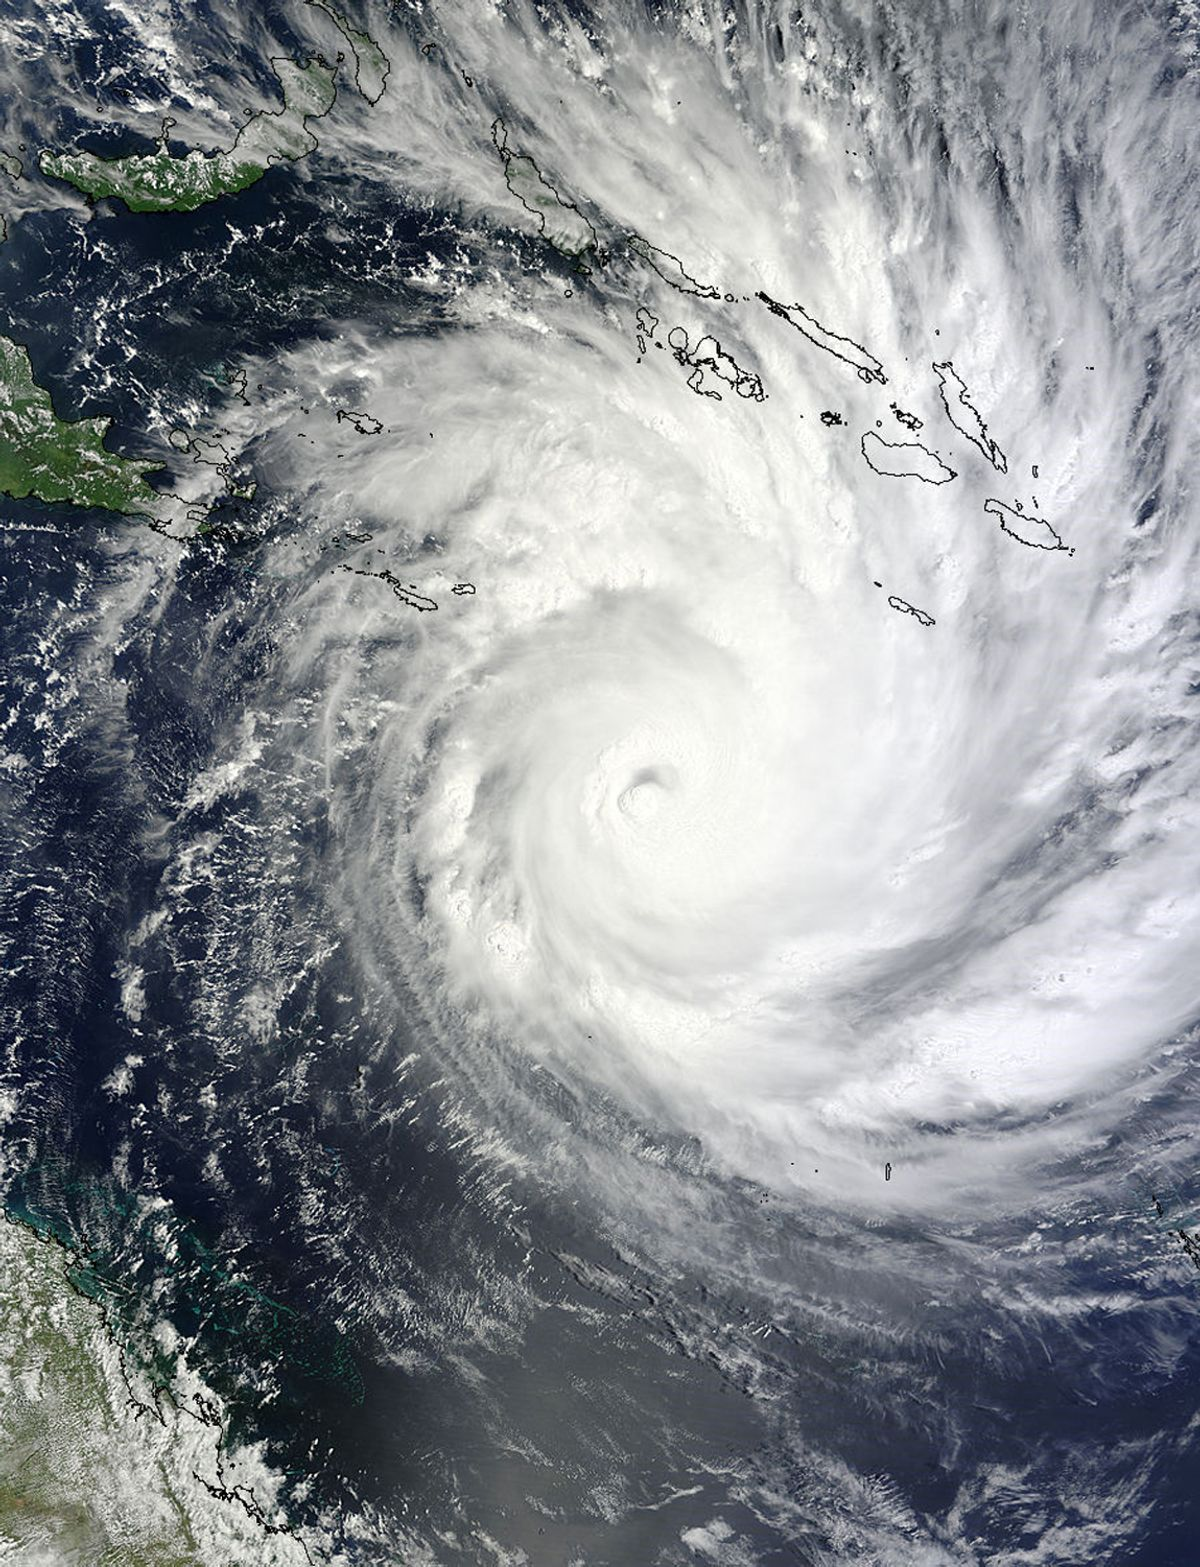 Cyclone Yasi's landfall in Australia in early February punctuated a year of extraordinary weather events.